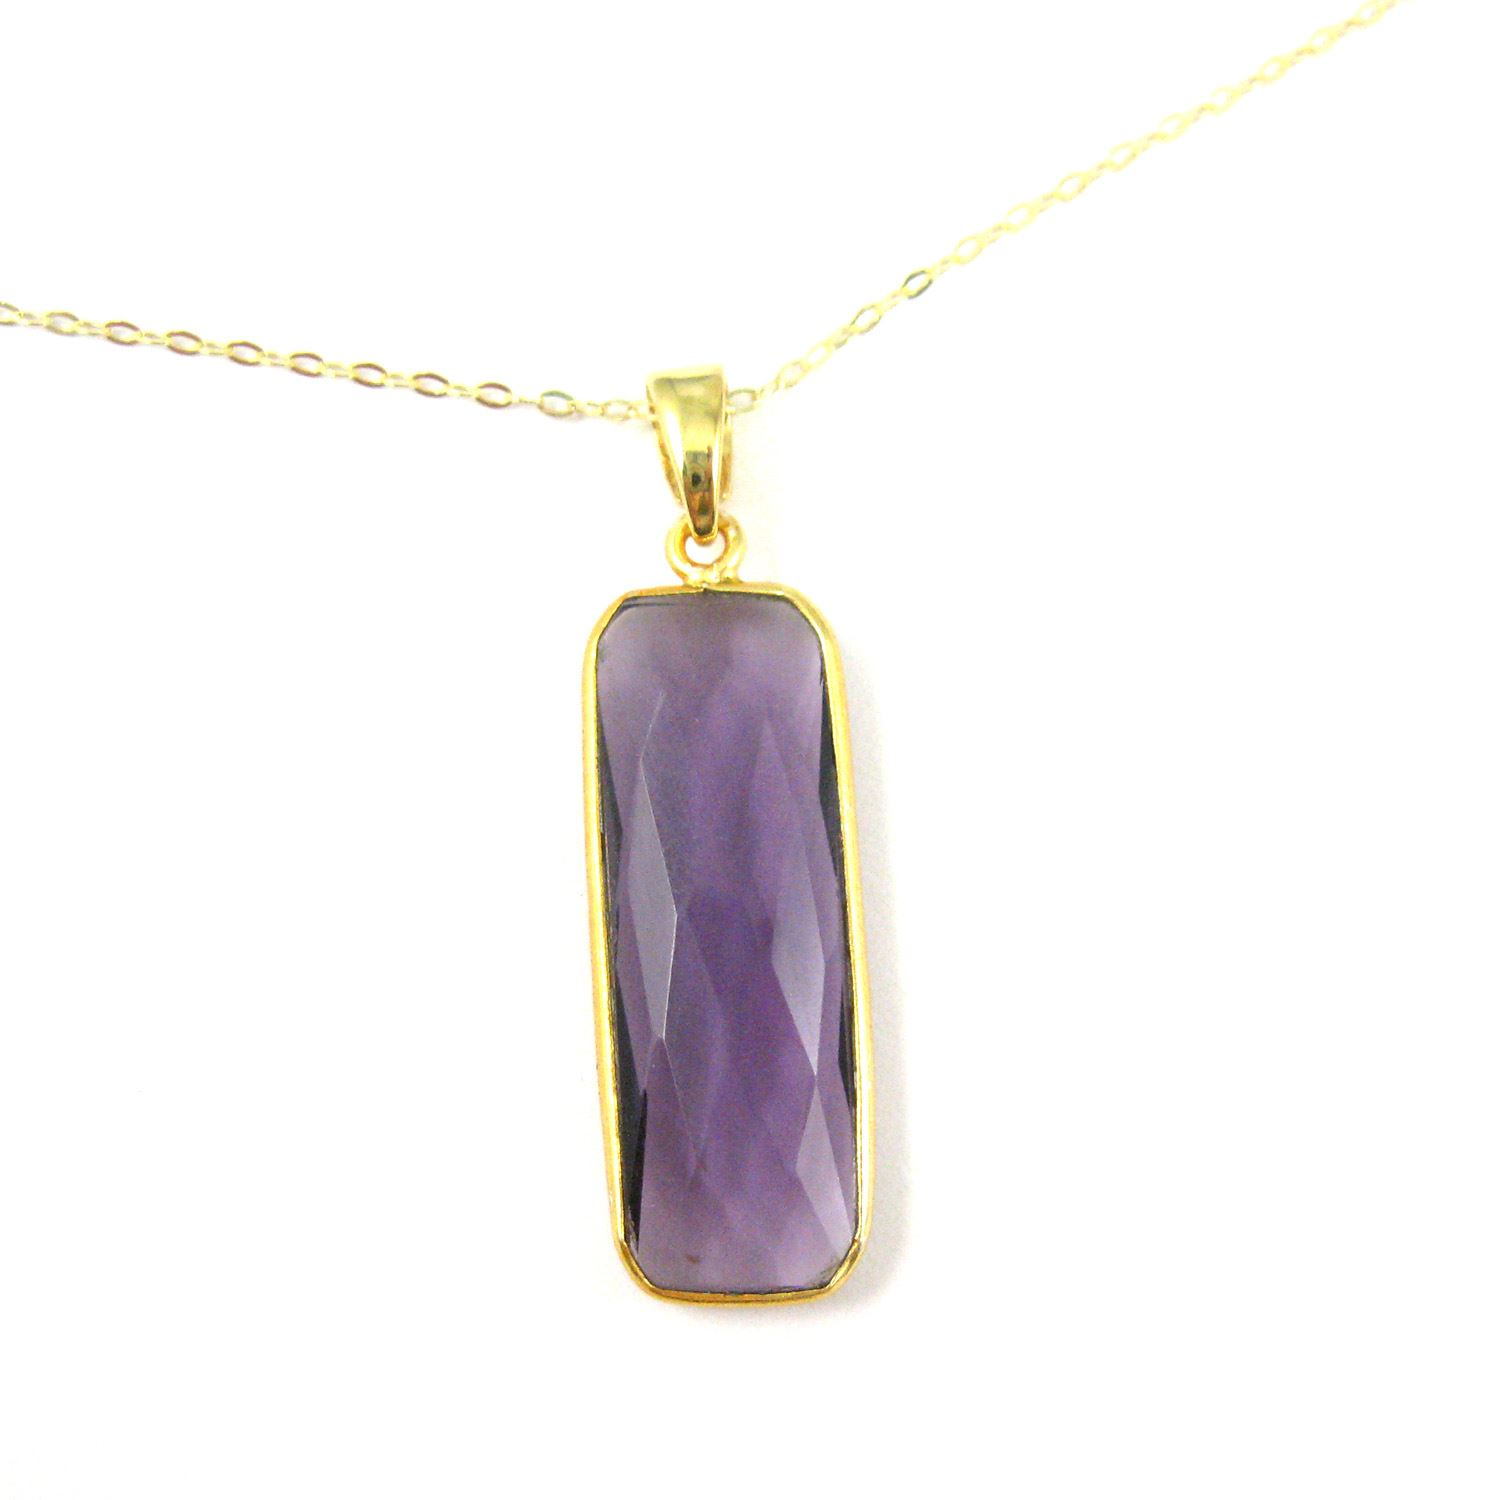 Bezel Gemstone Pendant with Bail - Gold plated Sterling Silver Rectangle Gem Pendant - Ready for Necklace - 40mm - Amethyst Quartz